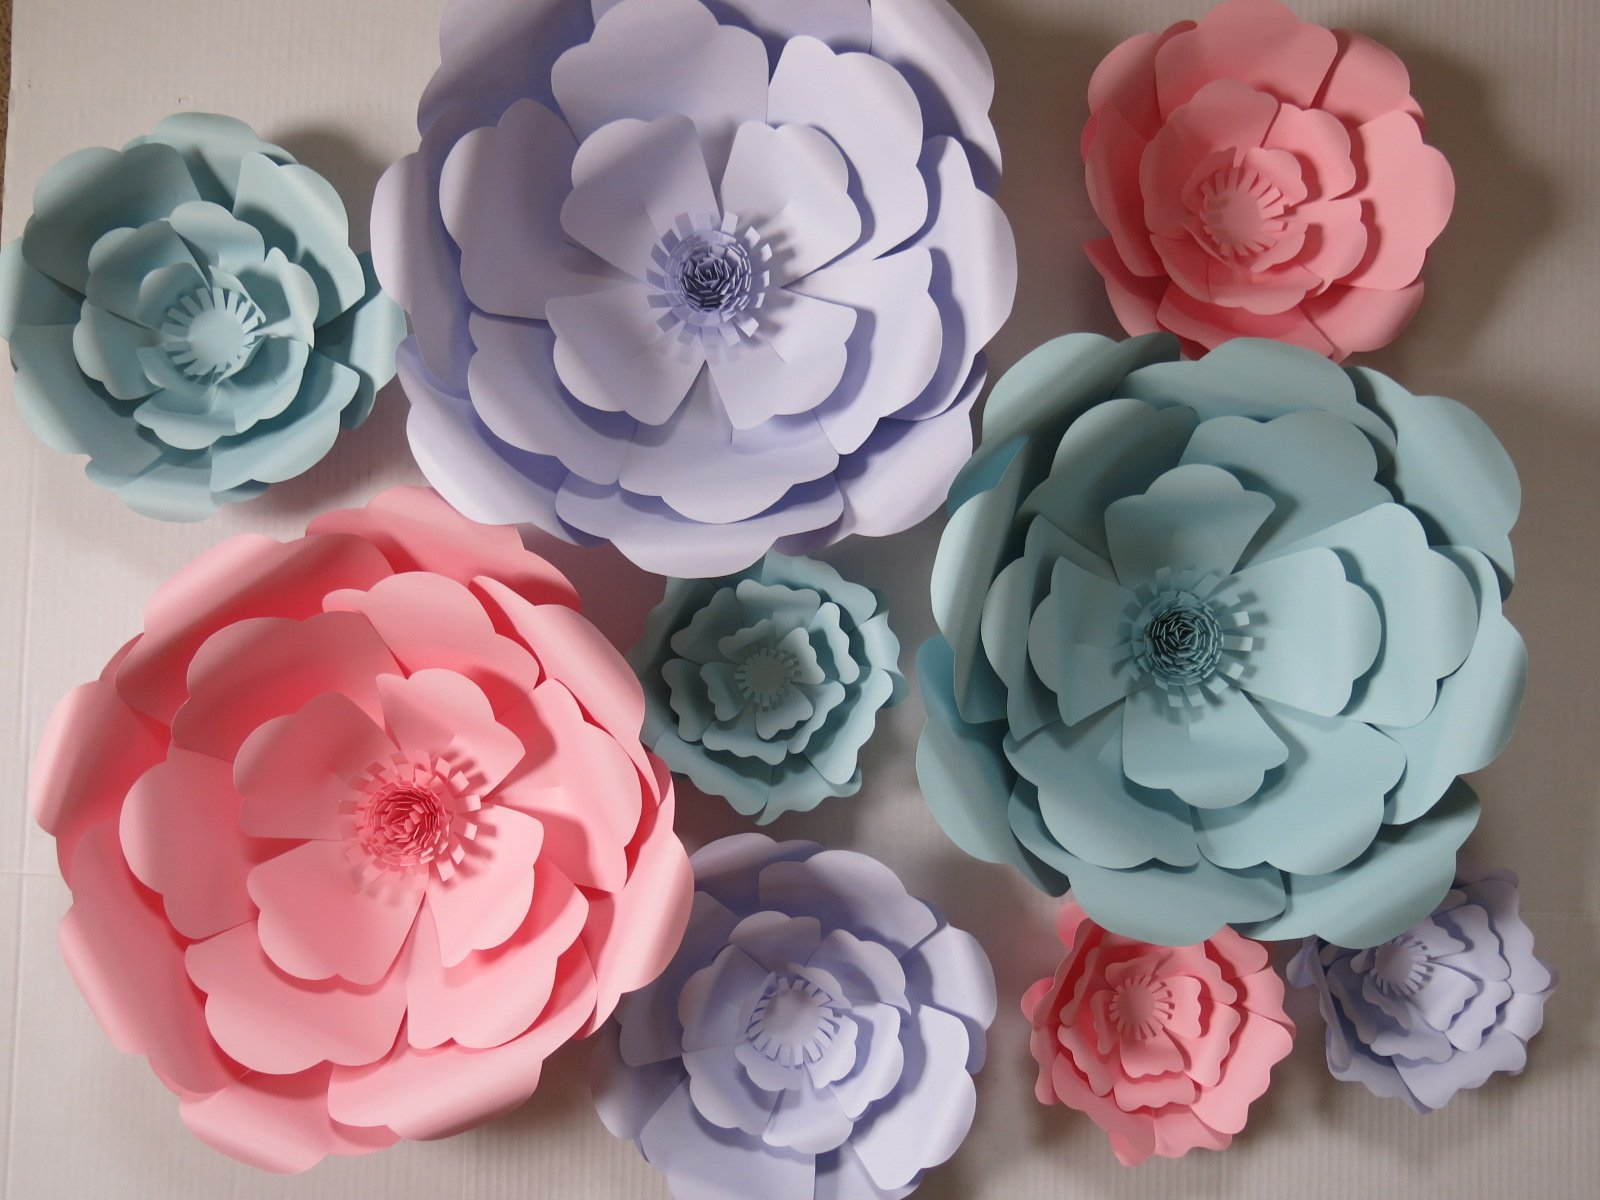 Pastel Giant Paper Flowers Set of 9, Pink, Lilac Purple and Blue Wedding Flower Wall, Rose Nursery Decor, Bridal Shower 3D Background 6-16''